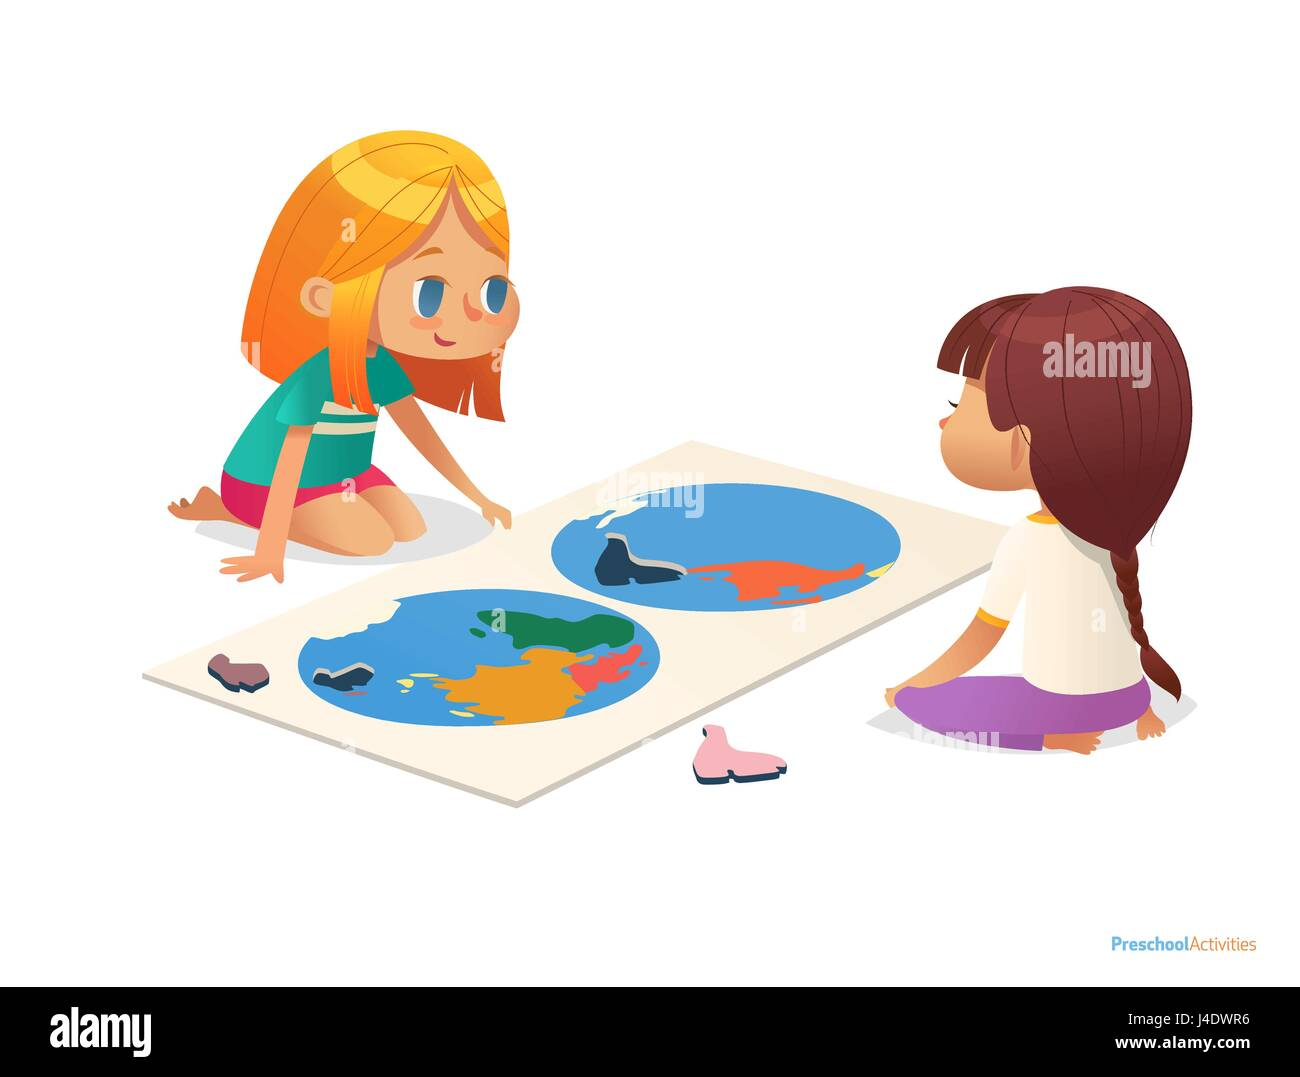 Two girls sitting on floor and trying to assemble world map puzzle two girls sitting on floor and trying to assemble world map puzzle educational activities for children learning through play concept gumiabroncs Image collections